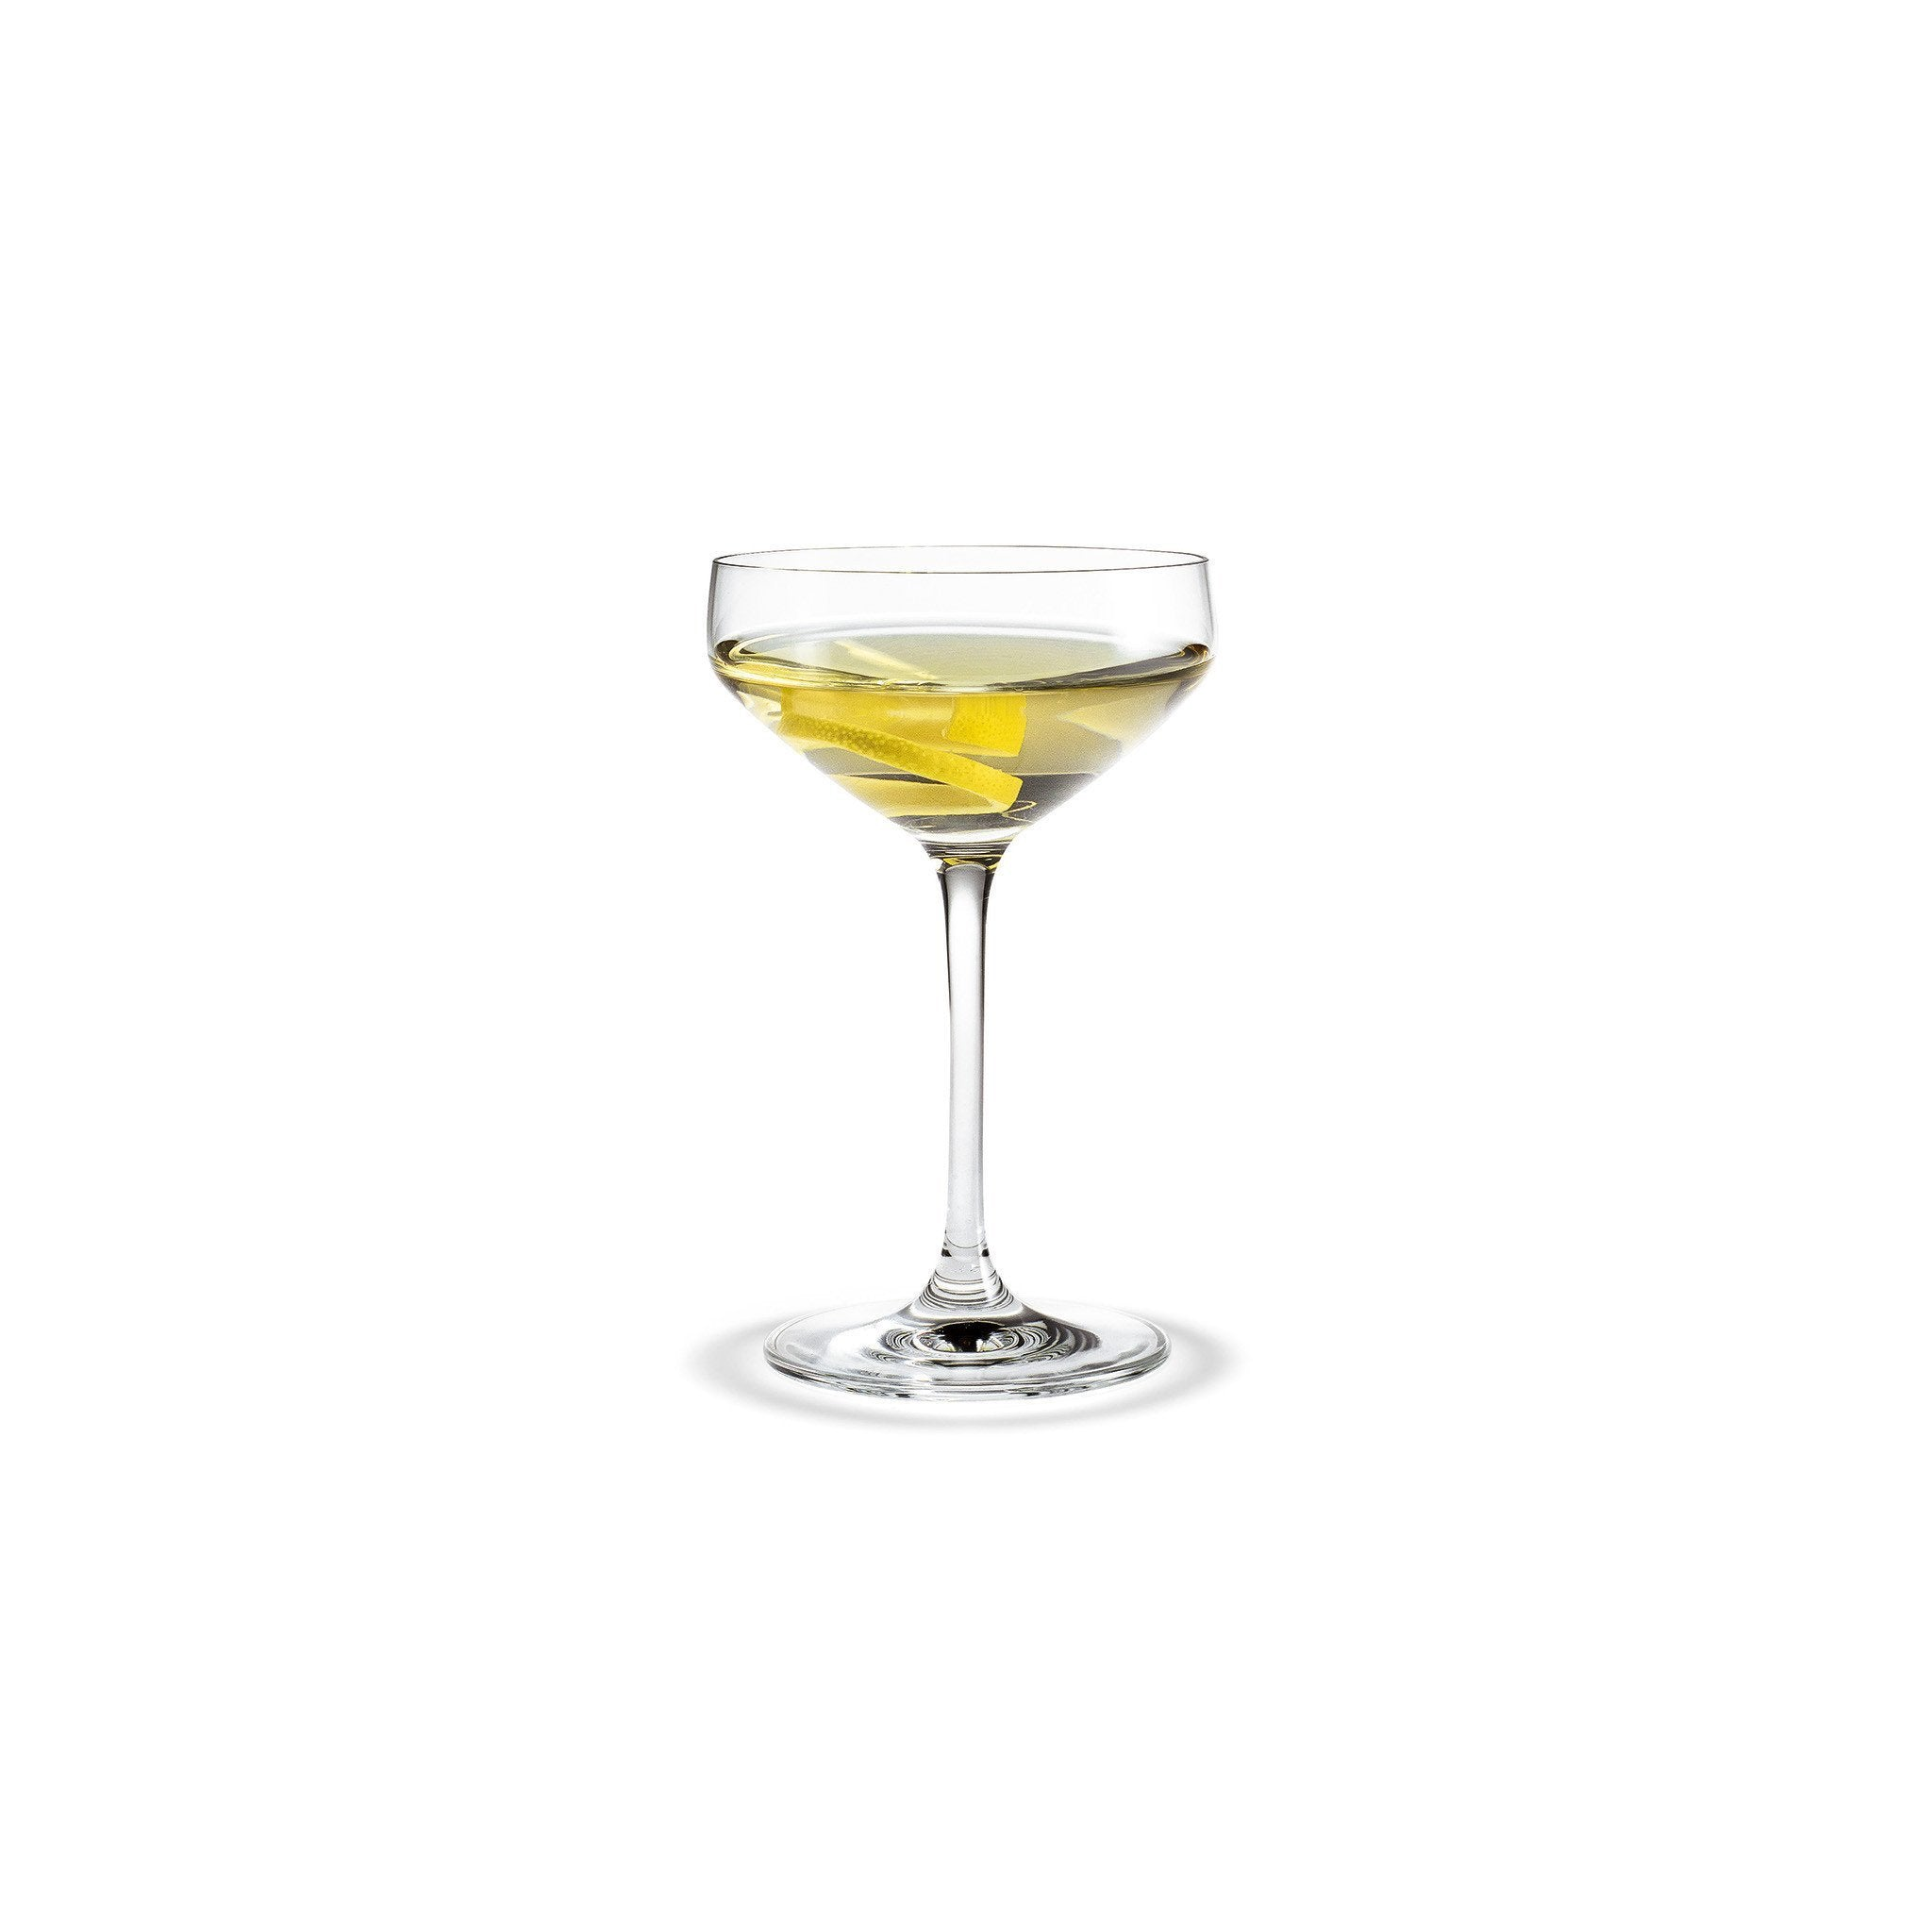 Perfection Martini Glass, 6 Pcs.